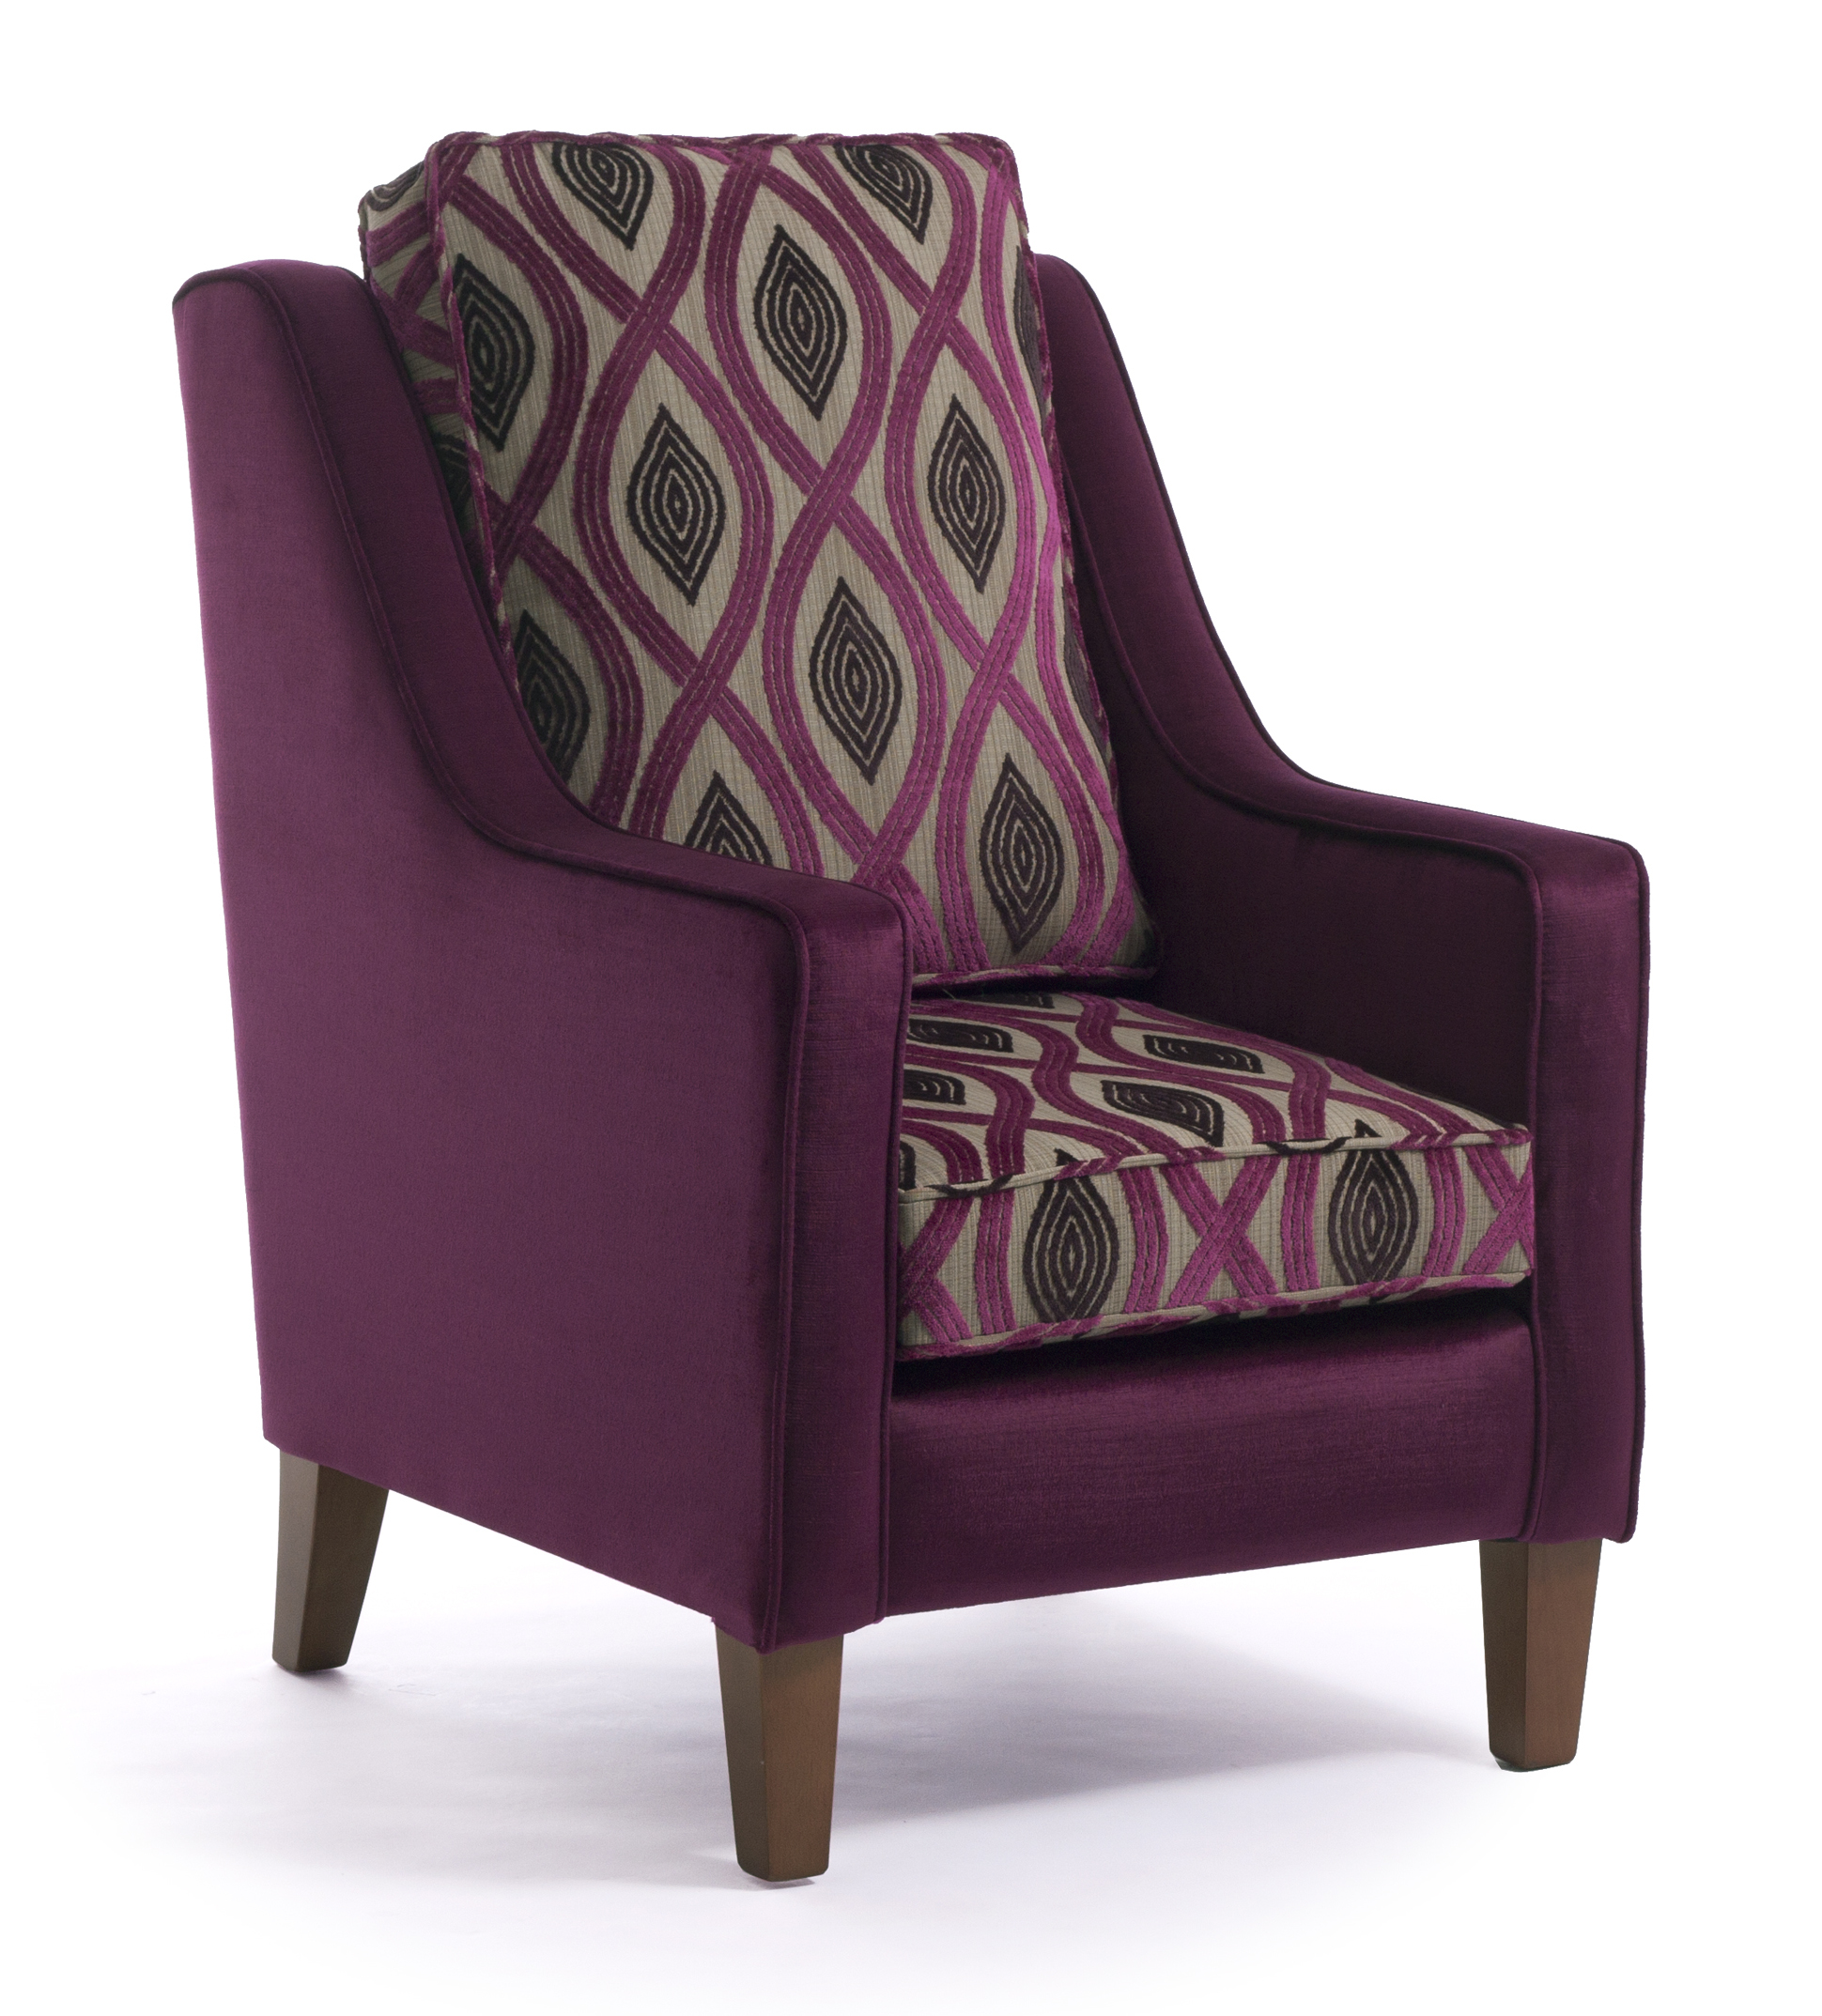 Grosvenor high back armchair cfs contract furniture for Armchair with high back